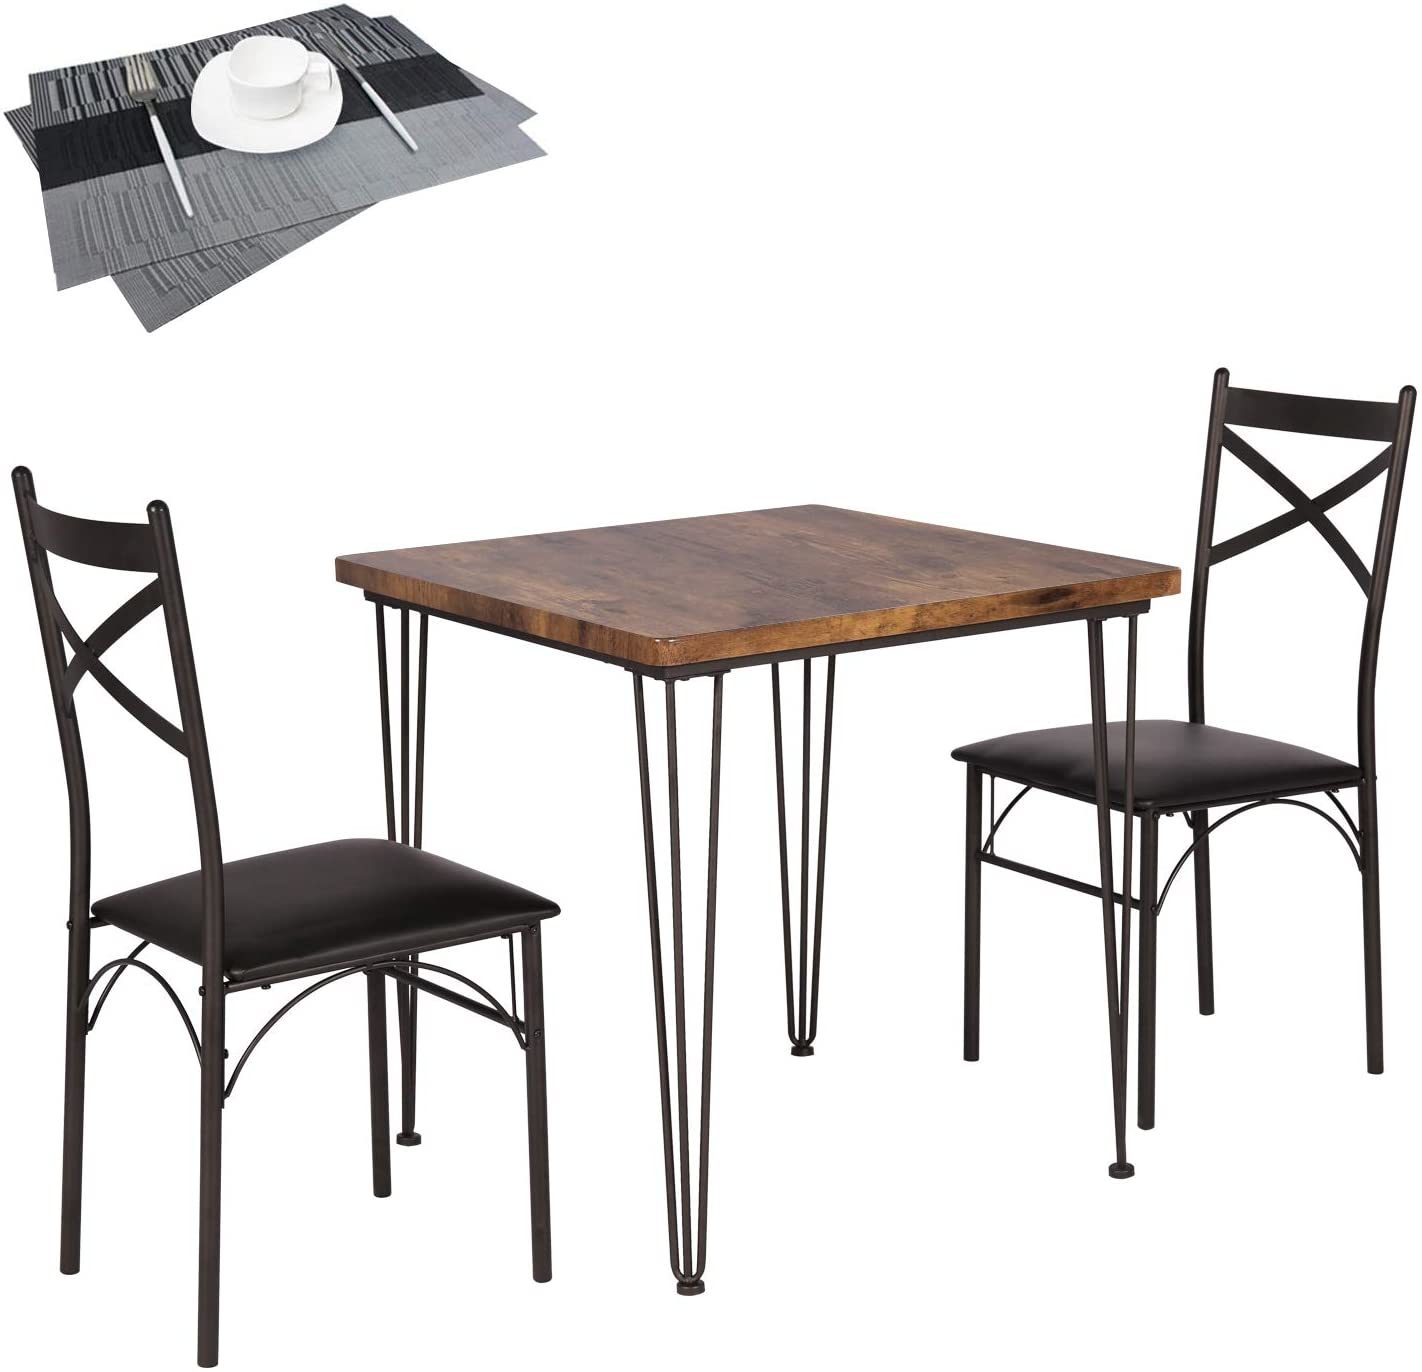 China New Design Modern Marble Extendable Dining Table And Chairs China Dining Table Set Dining Room Furniture Dining Table Designs